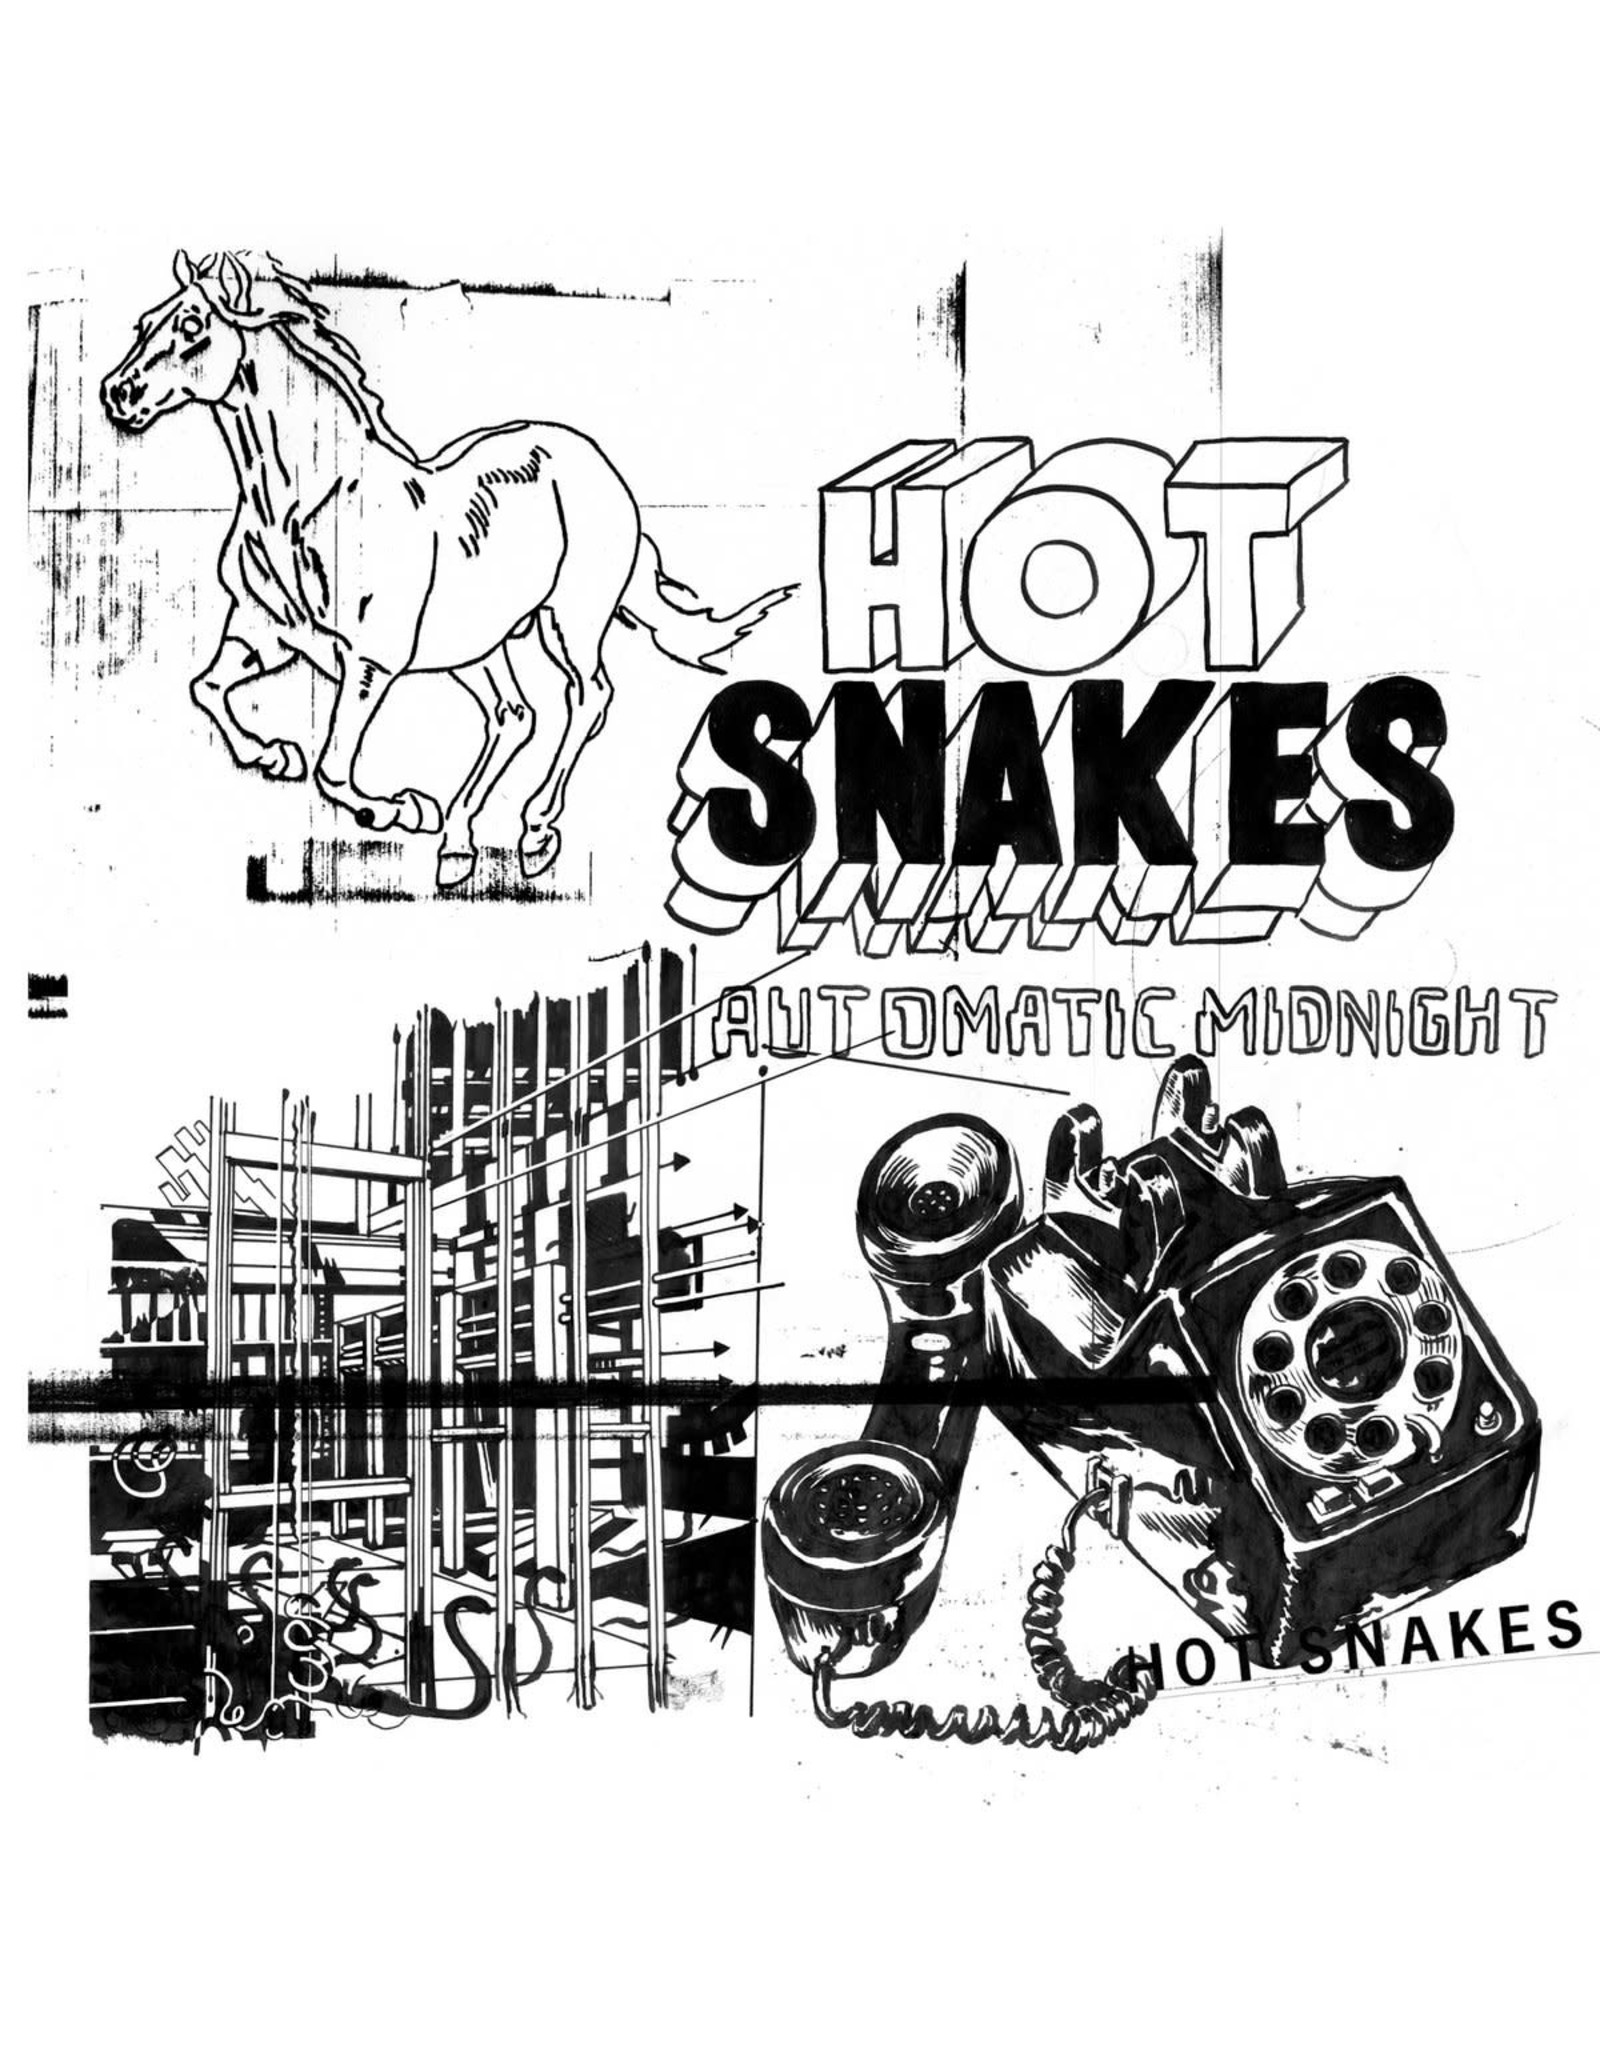 Hot Snakes - Automatic Midnight LP